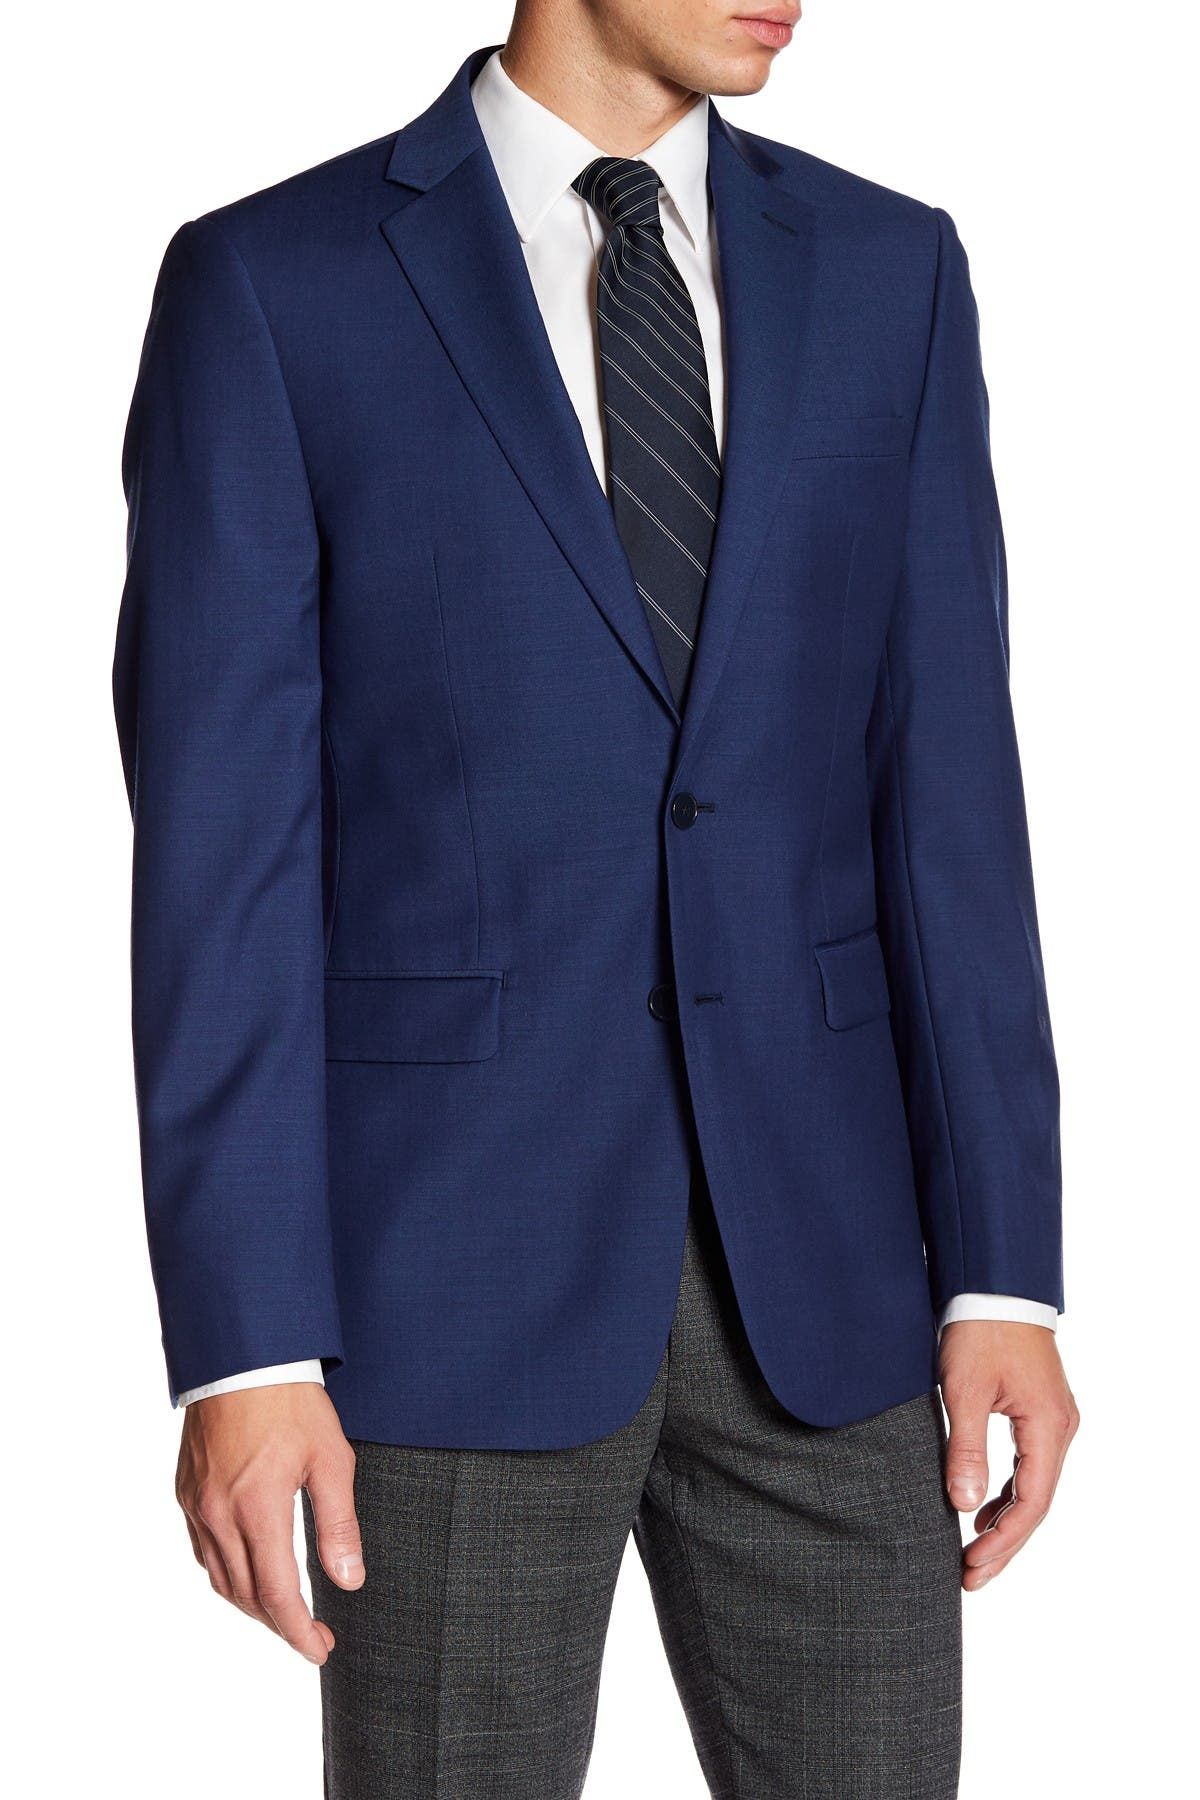 Image of Calvin Klein Solid Blue Wool Suit Suit Separates Jacket